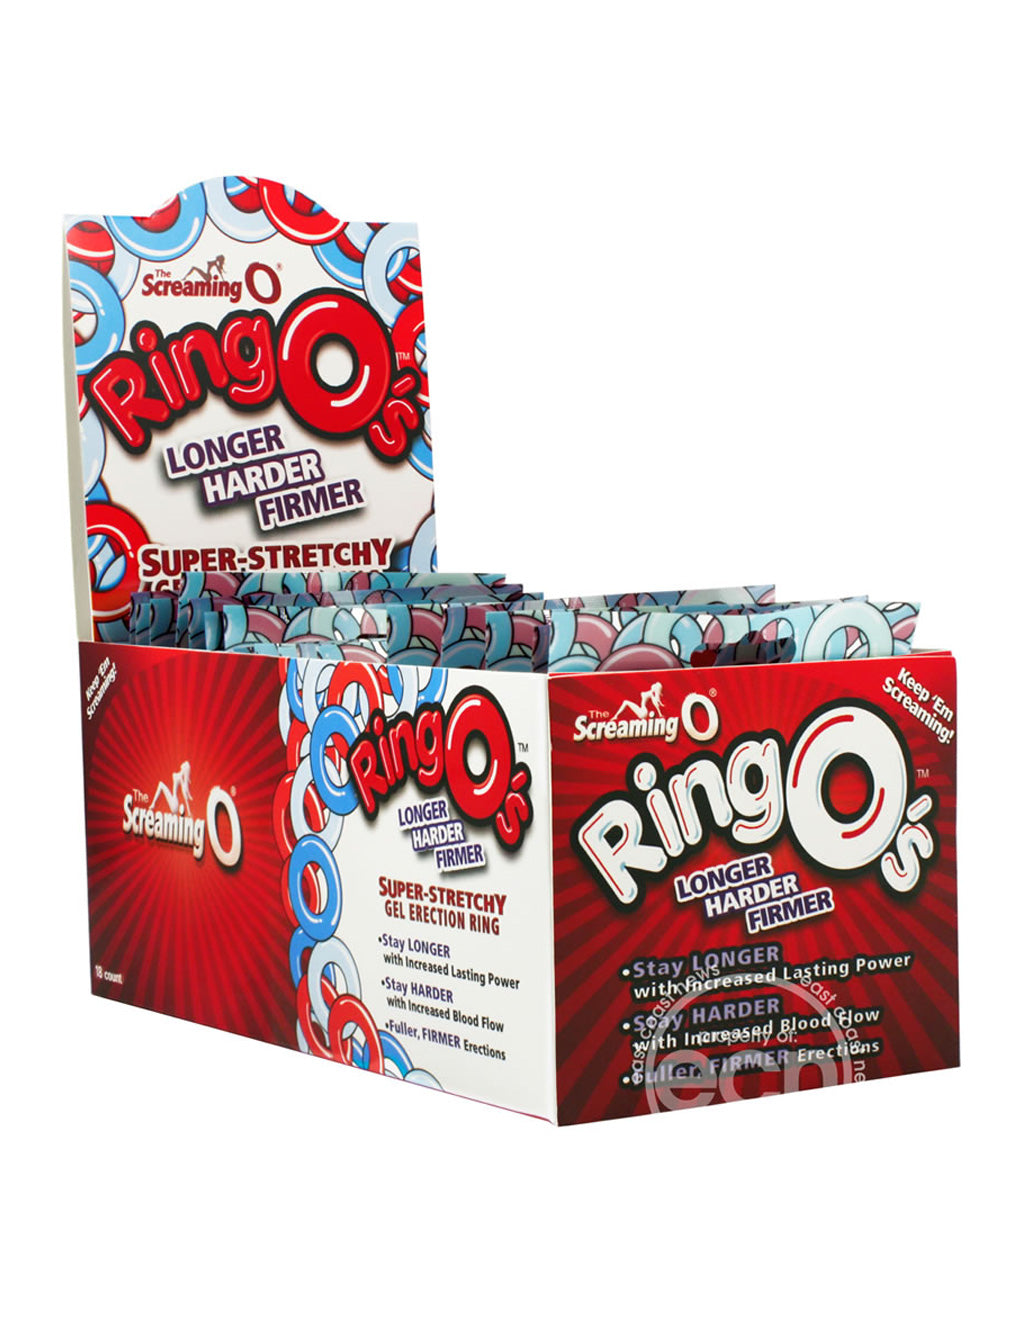 Screaming O Ring O's Stretchy Cock Ring full box